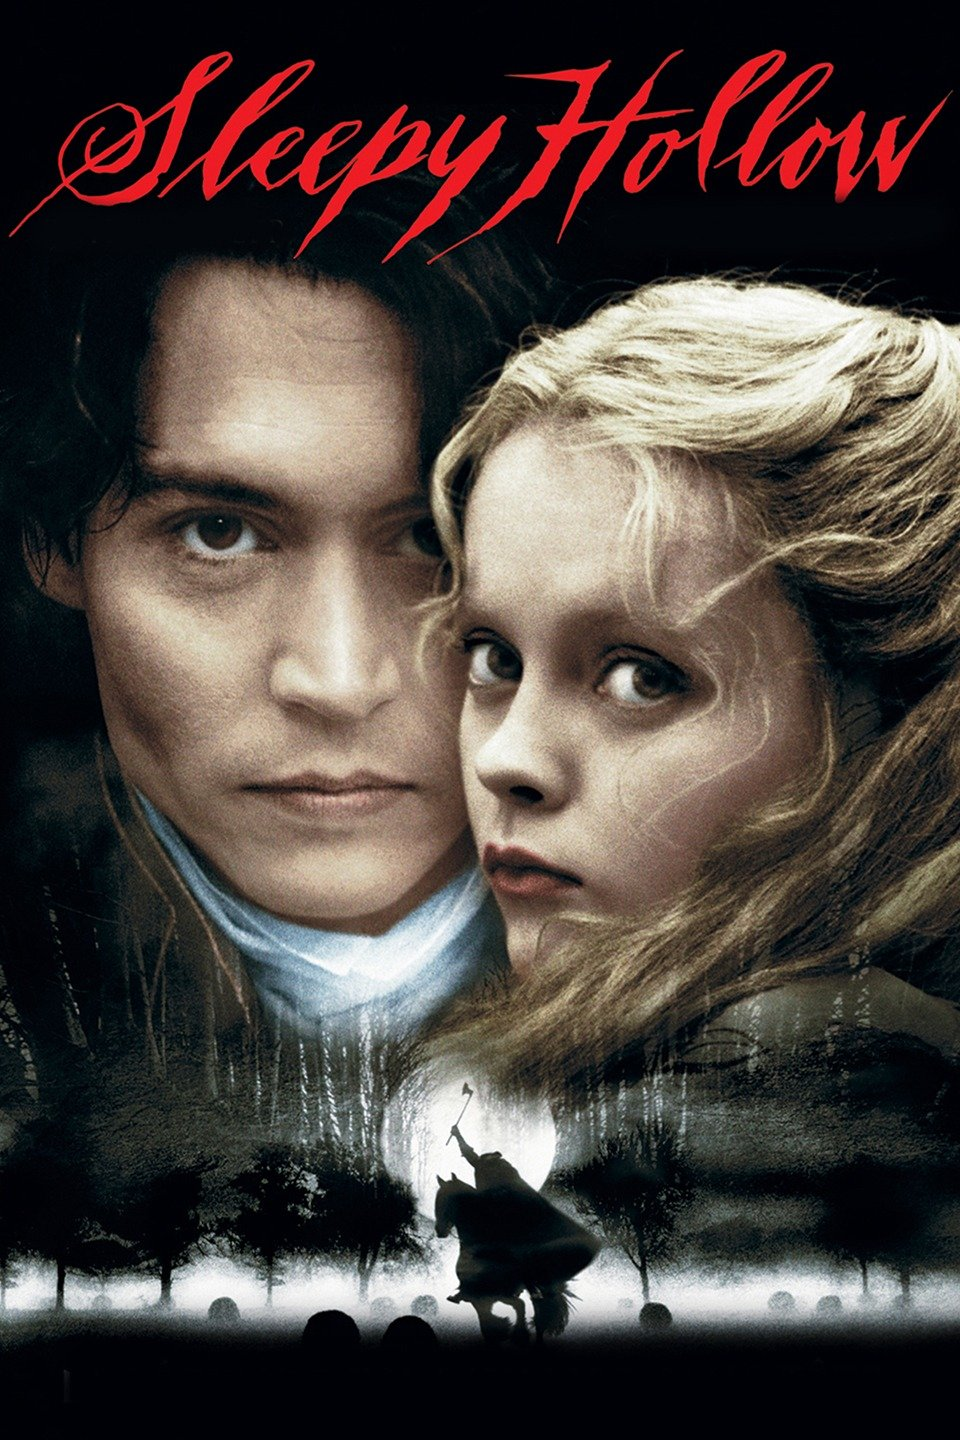 Sleepy Hollow (1999) 720p BluRay x264 Dual Audio [Hindi DD5.1 – Eng]-1.6 GB